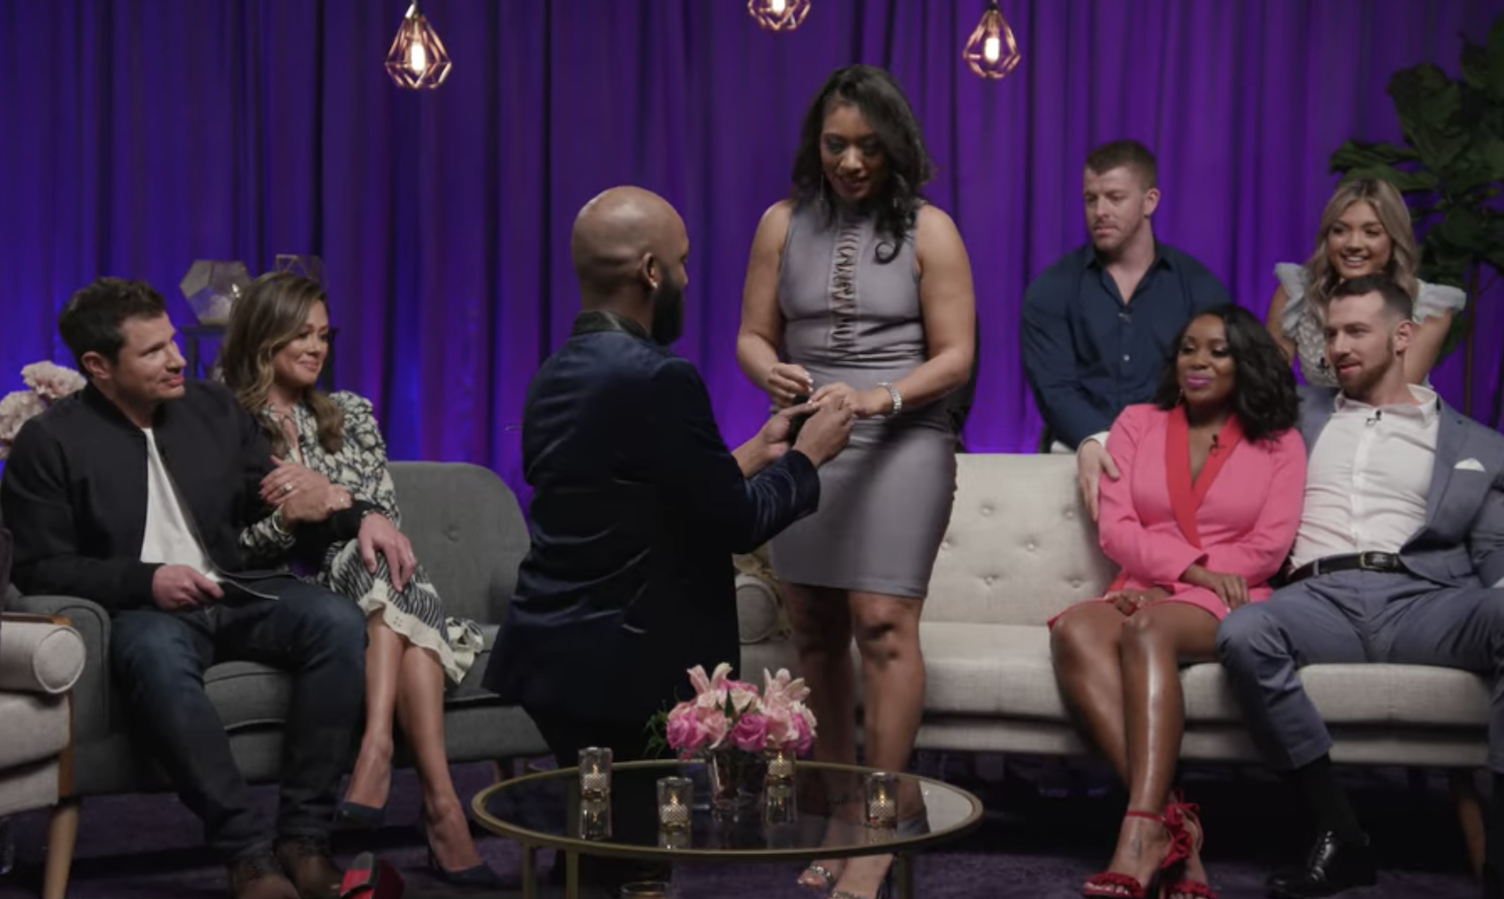 'Love Is Blind' reunion special